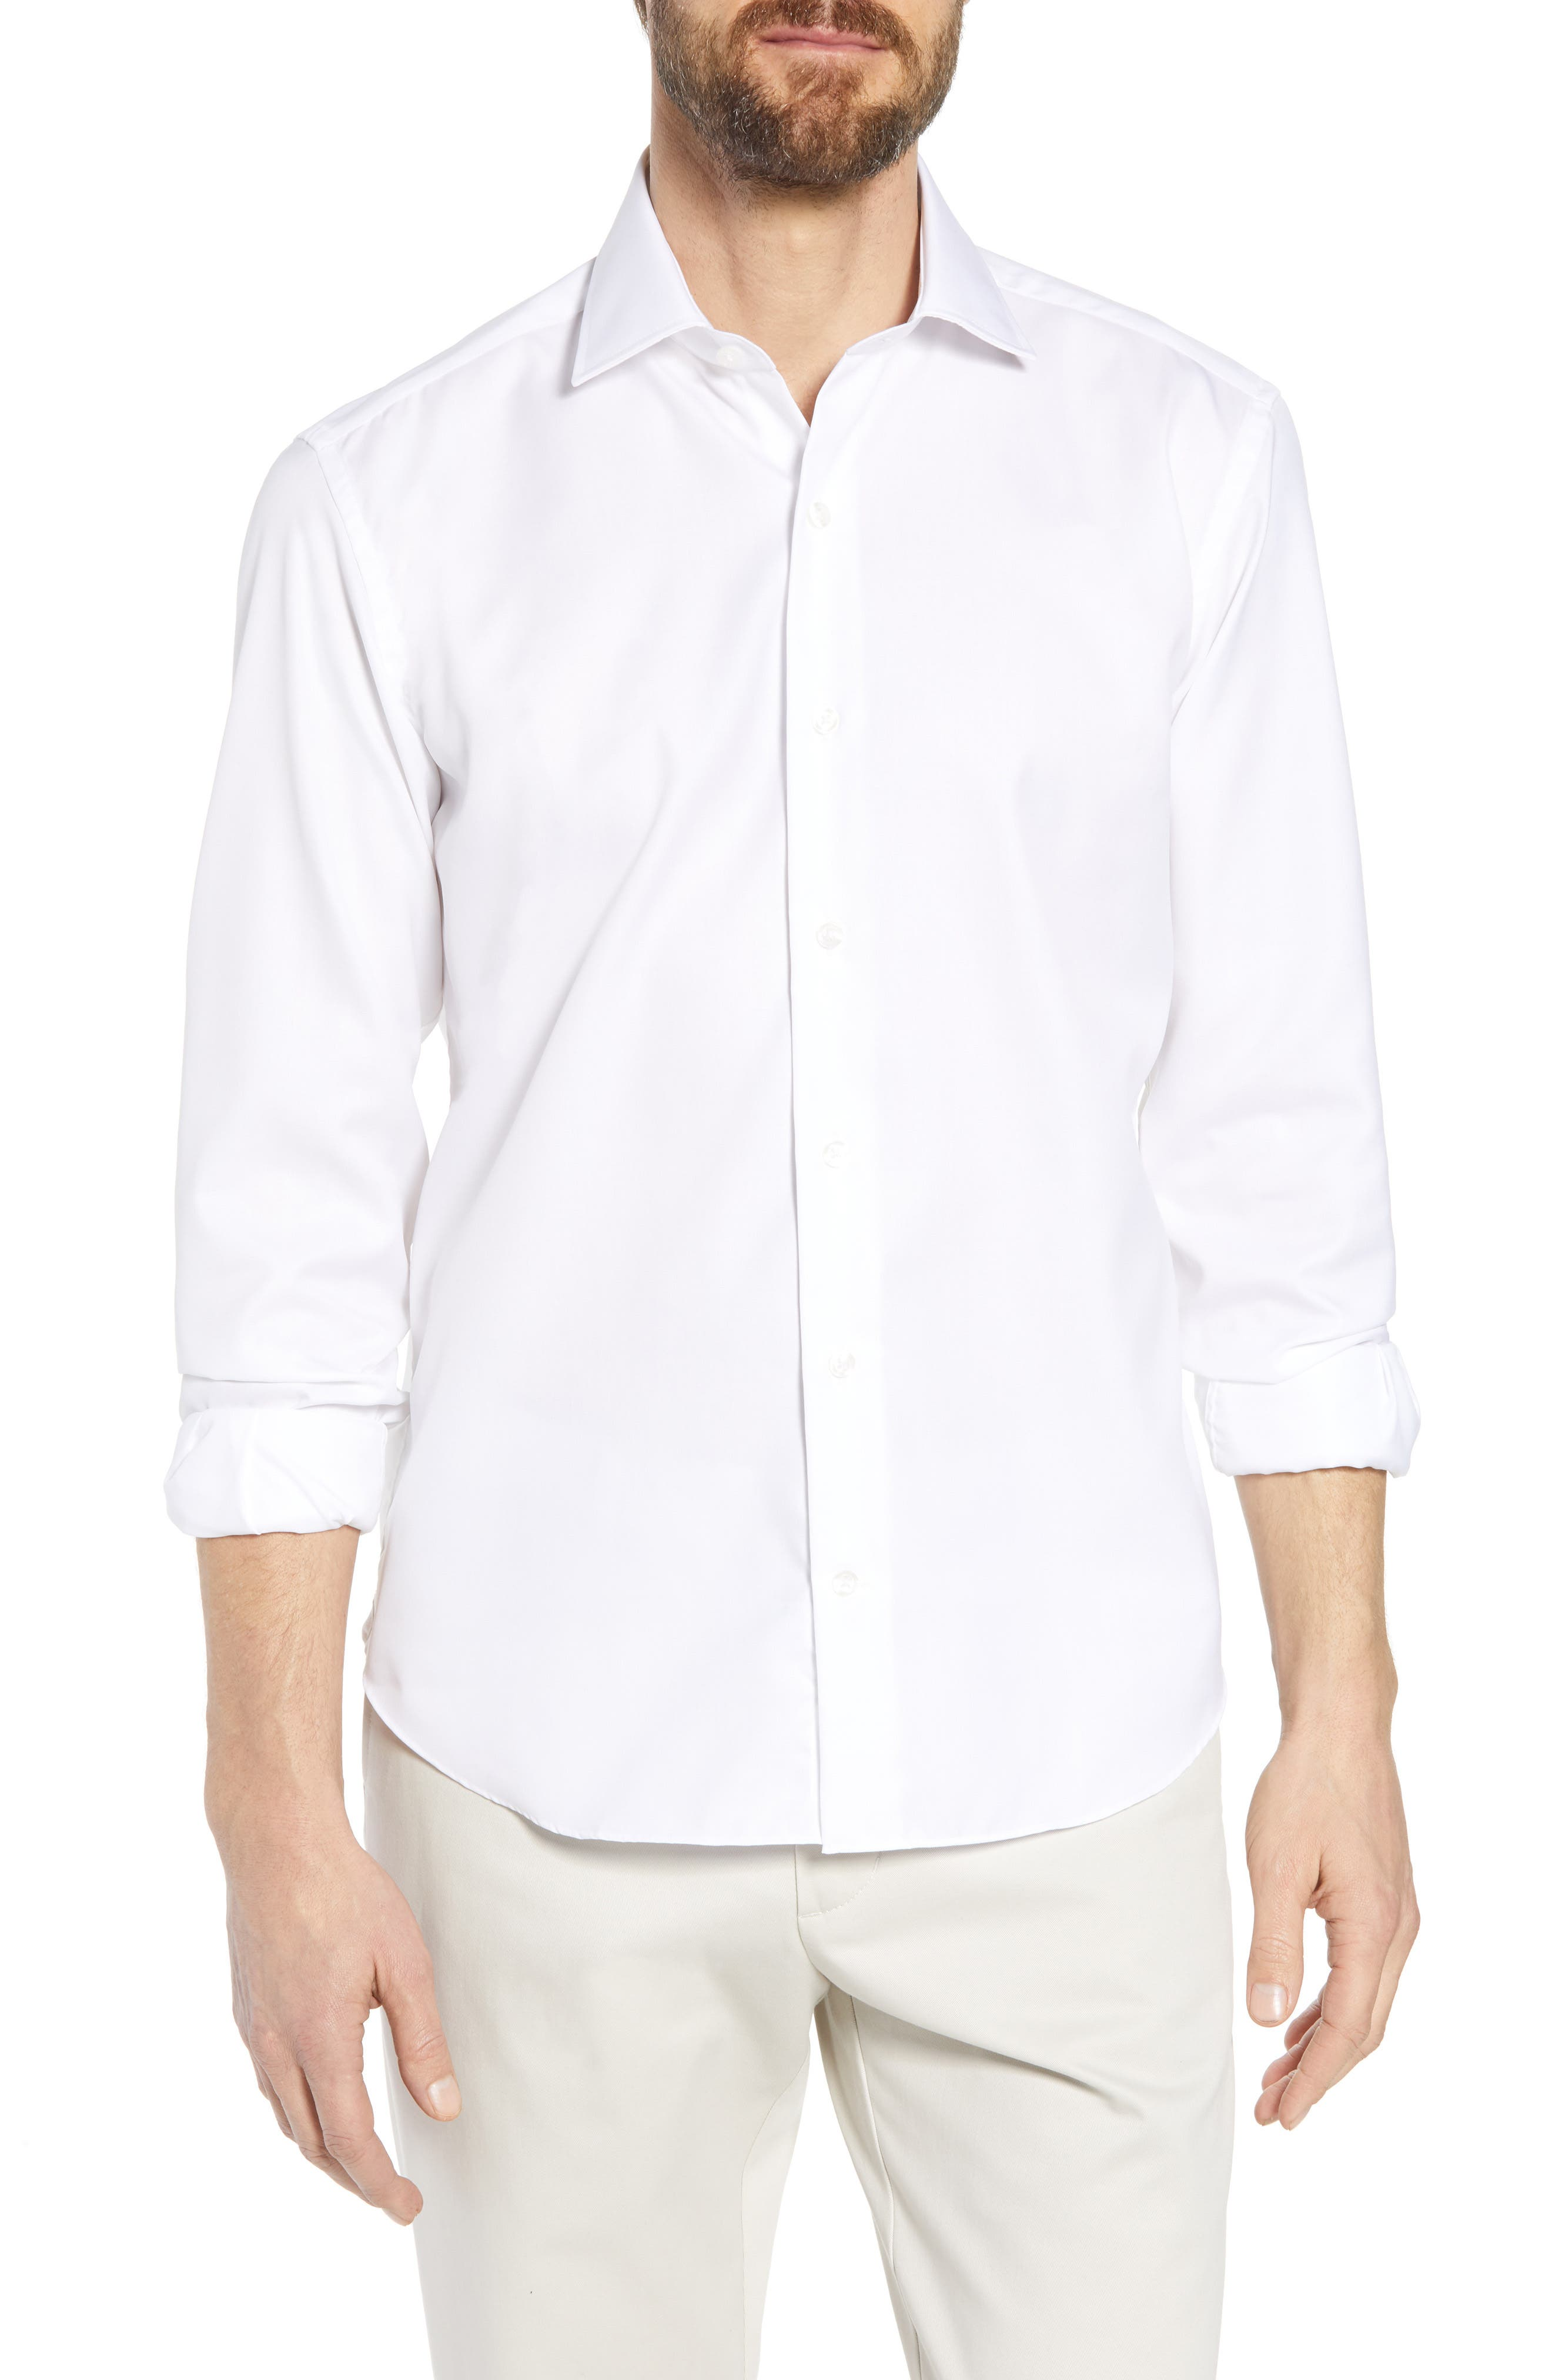 Crease Free Extra Soft Sport Shirt,                         Main,                         color, White